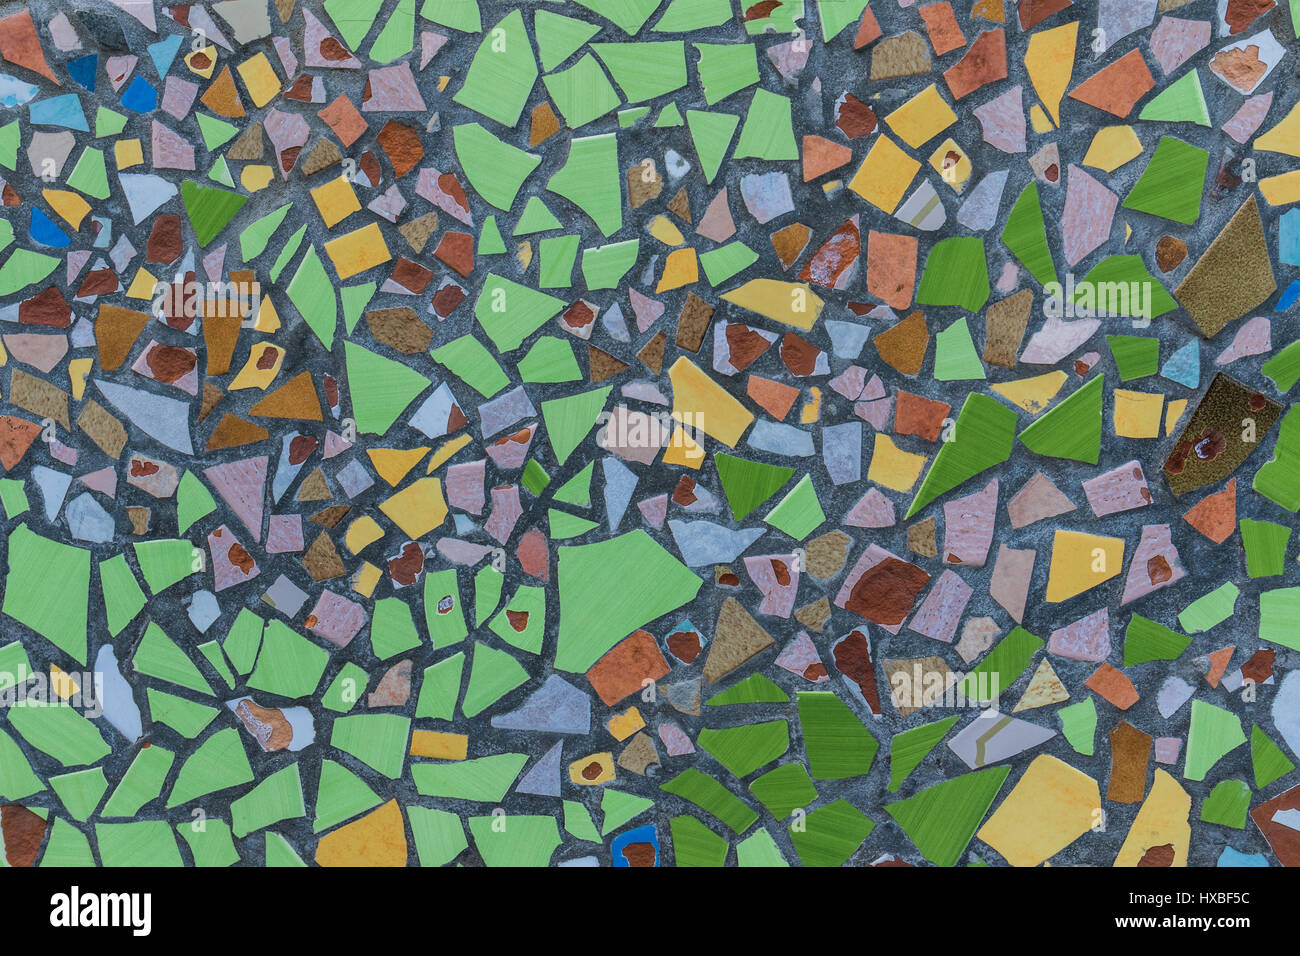 Colorful mosaic tiles house wall exterior - Stock Image